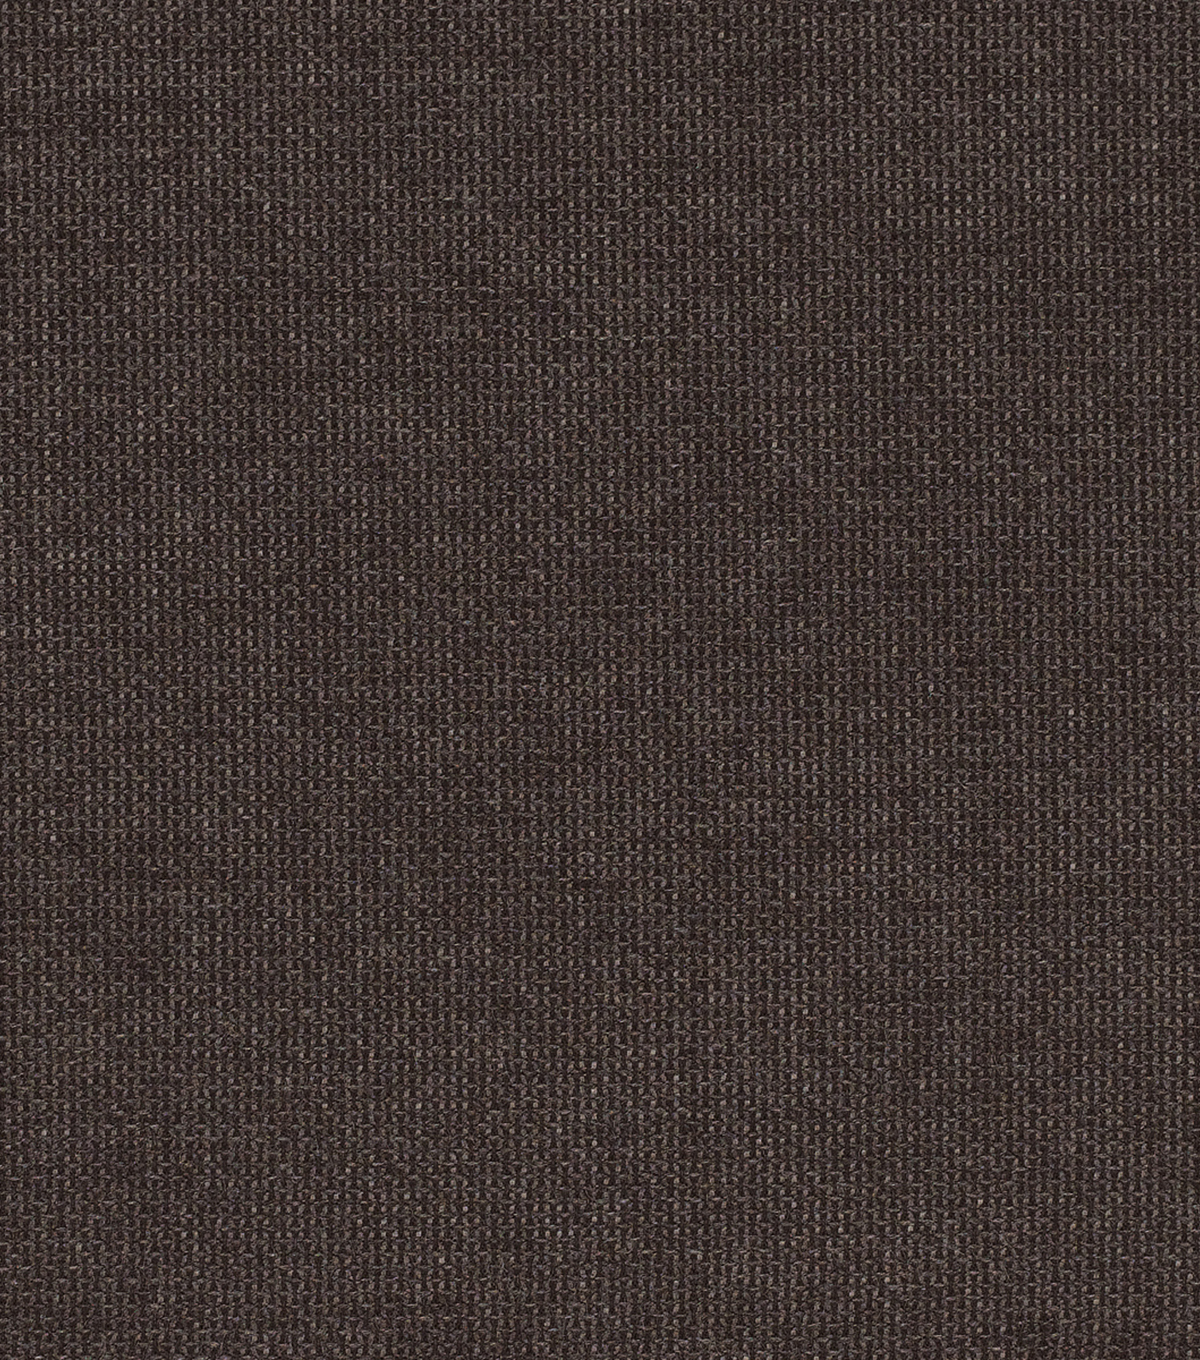 Sunbr Furn Shadow 51000-0013 Charc Swatch